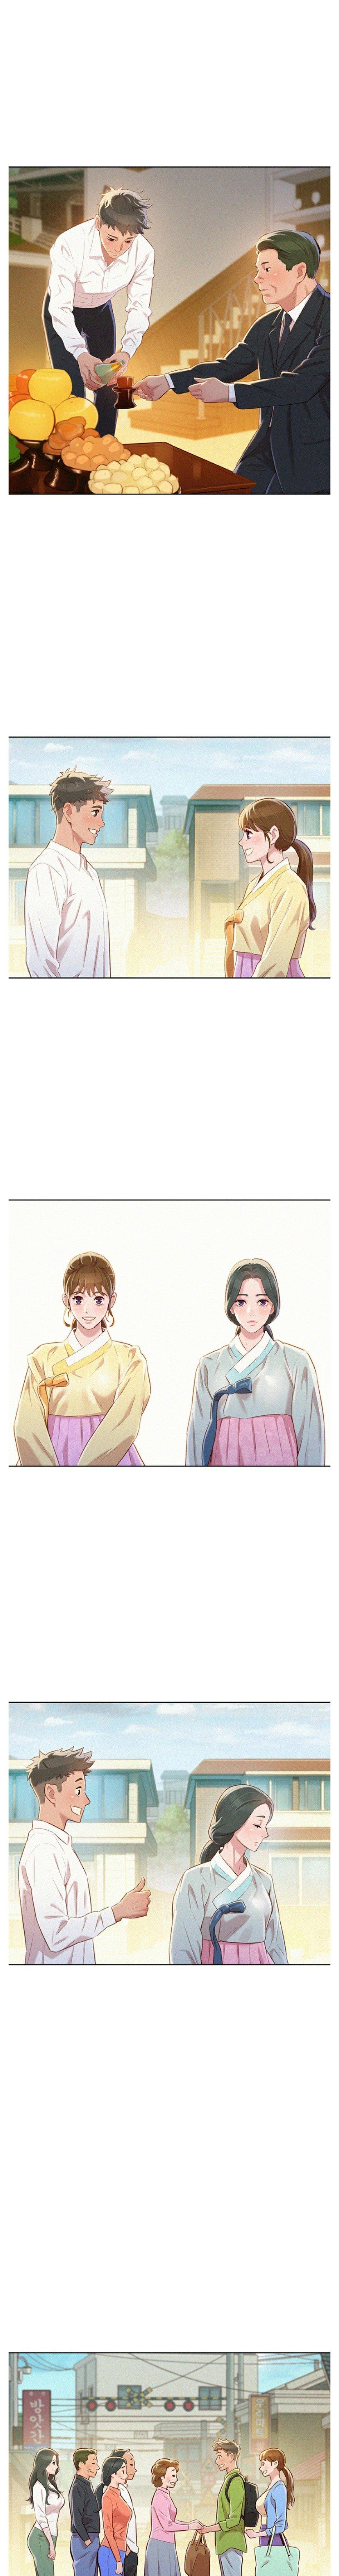 What do you Take me For? Ch.70/? 632